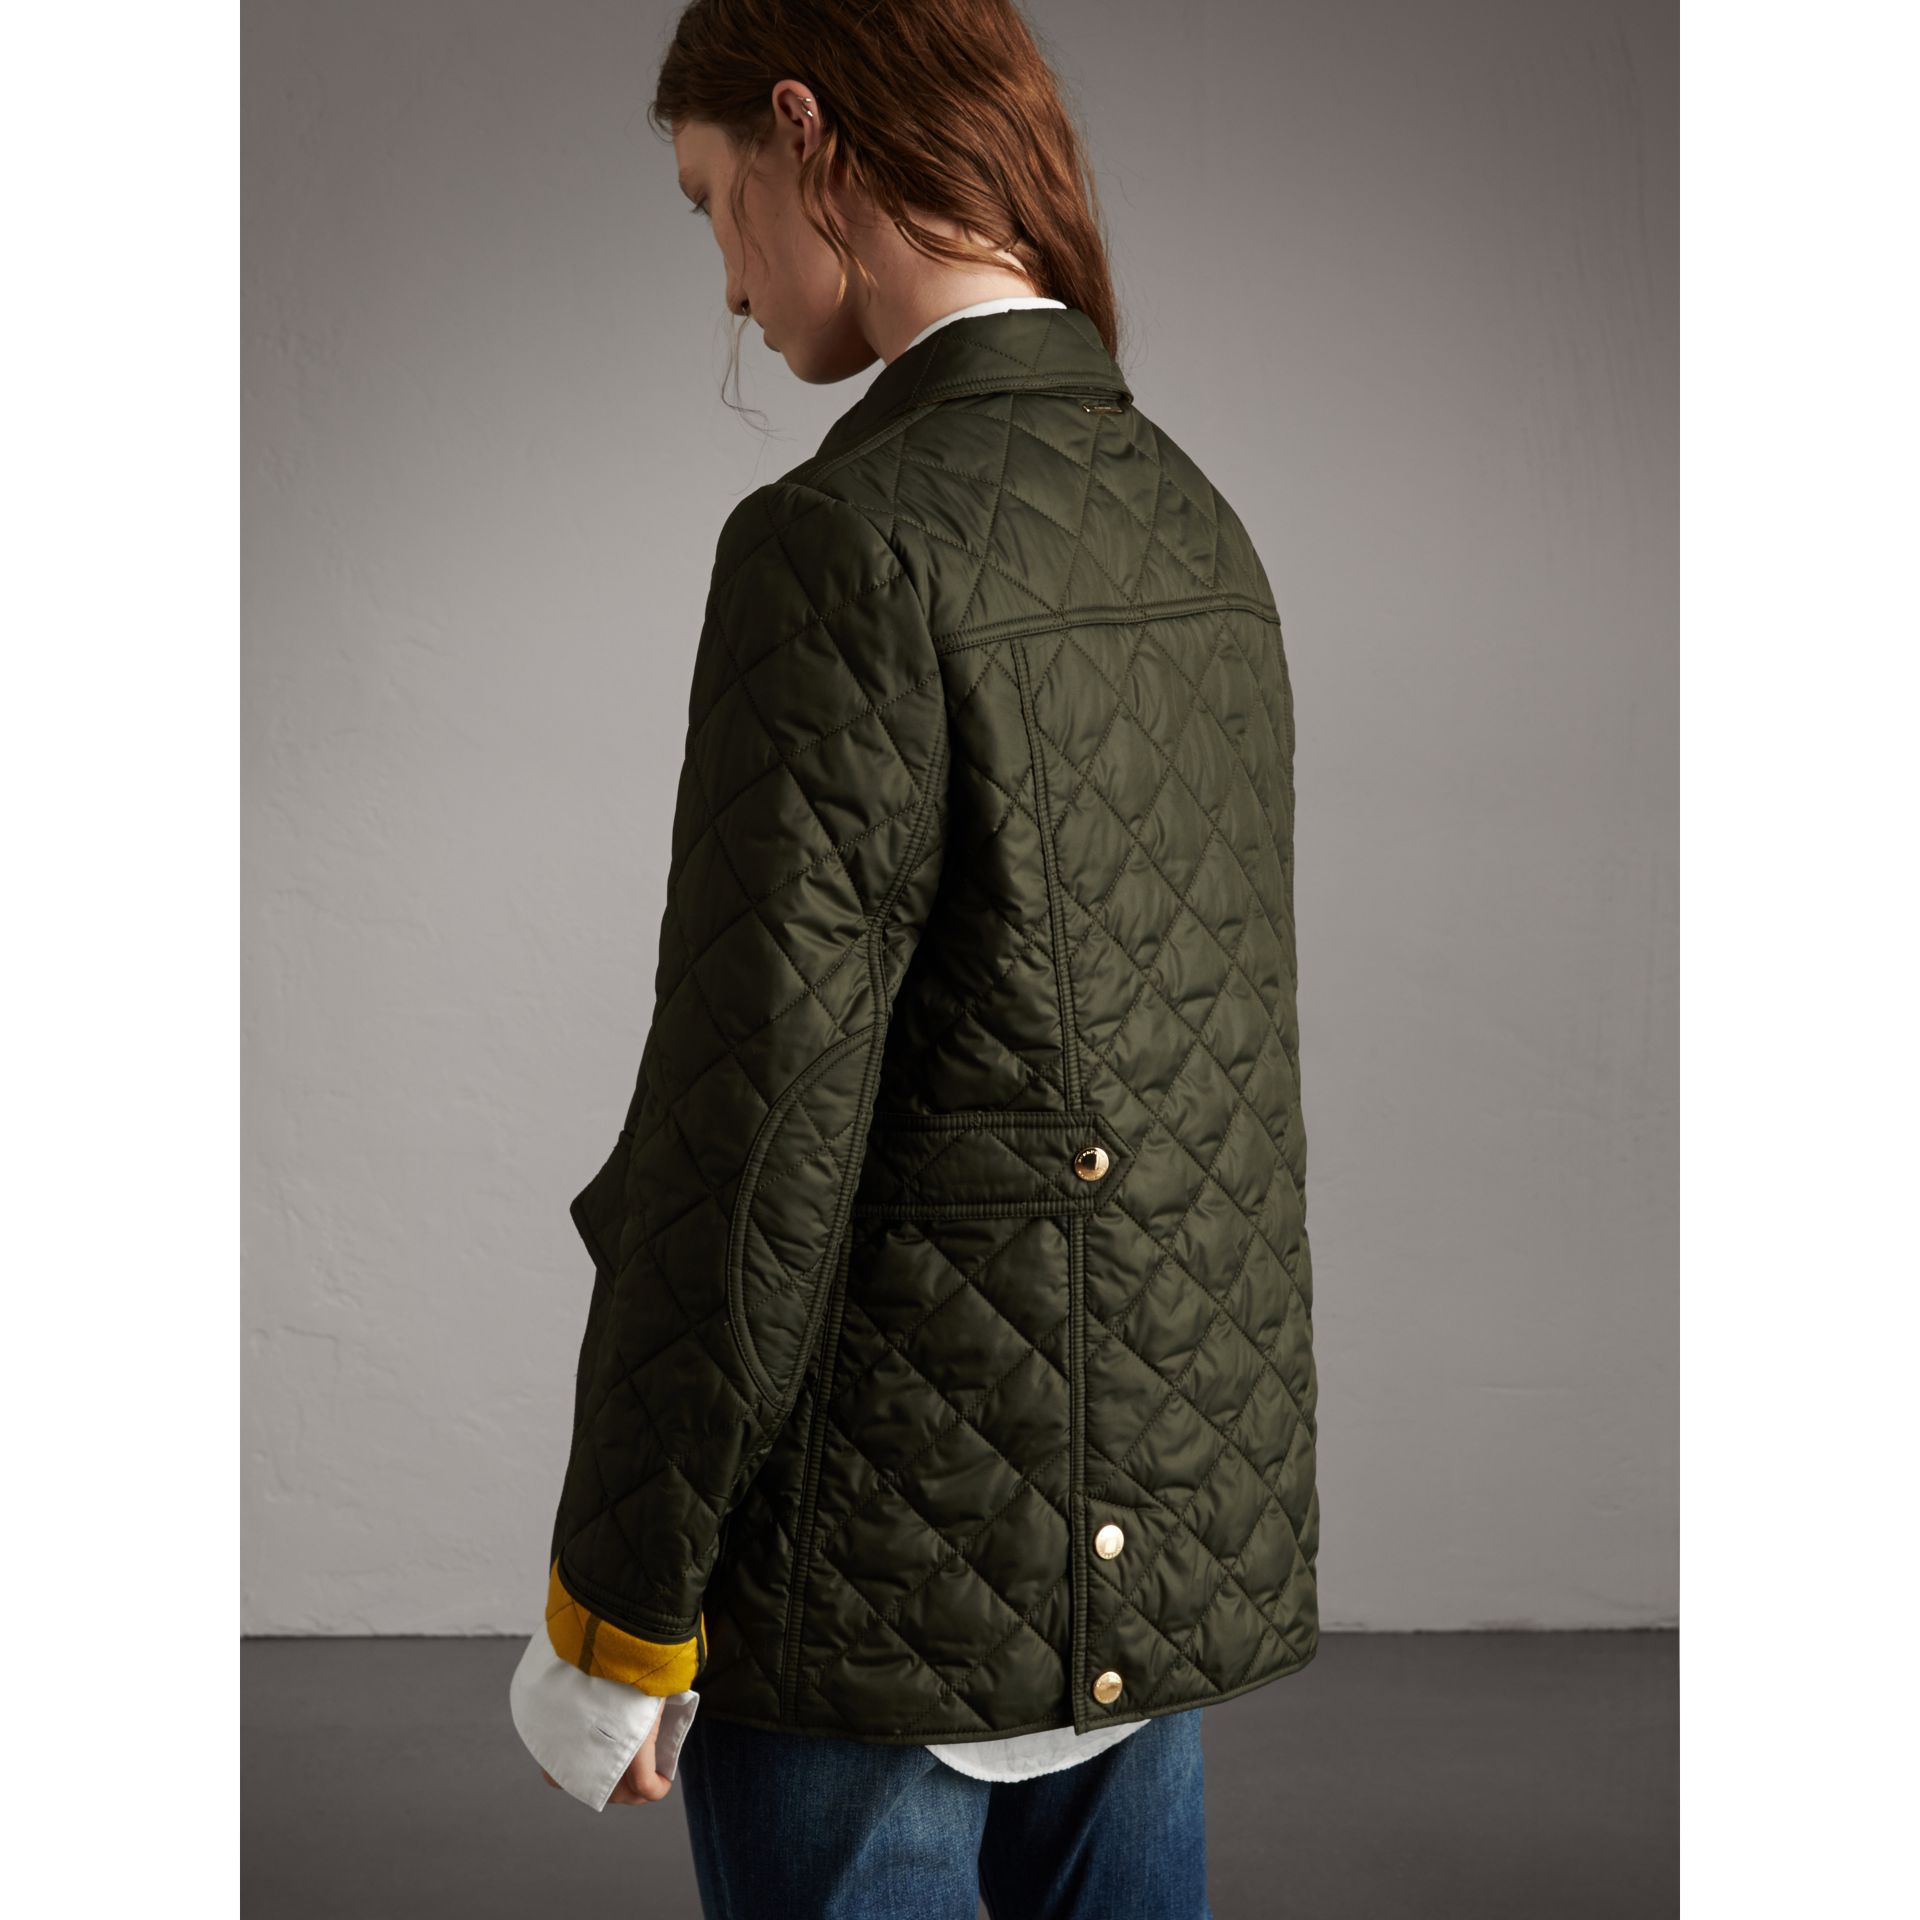 Check Detail Diamond Quilted Jacket in Military Green - Women | Burberry Canada - gallery image 3